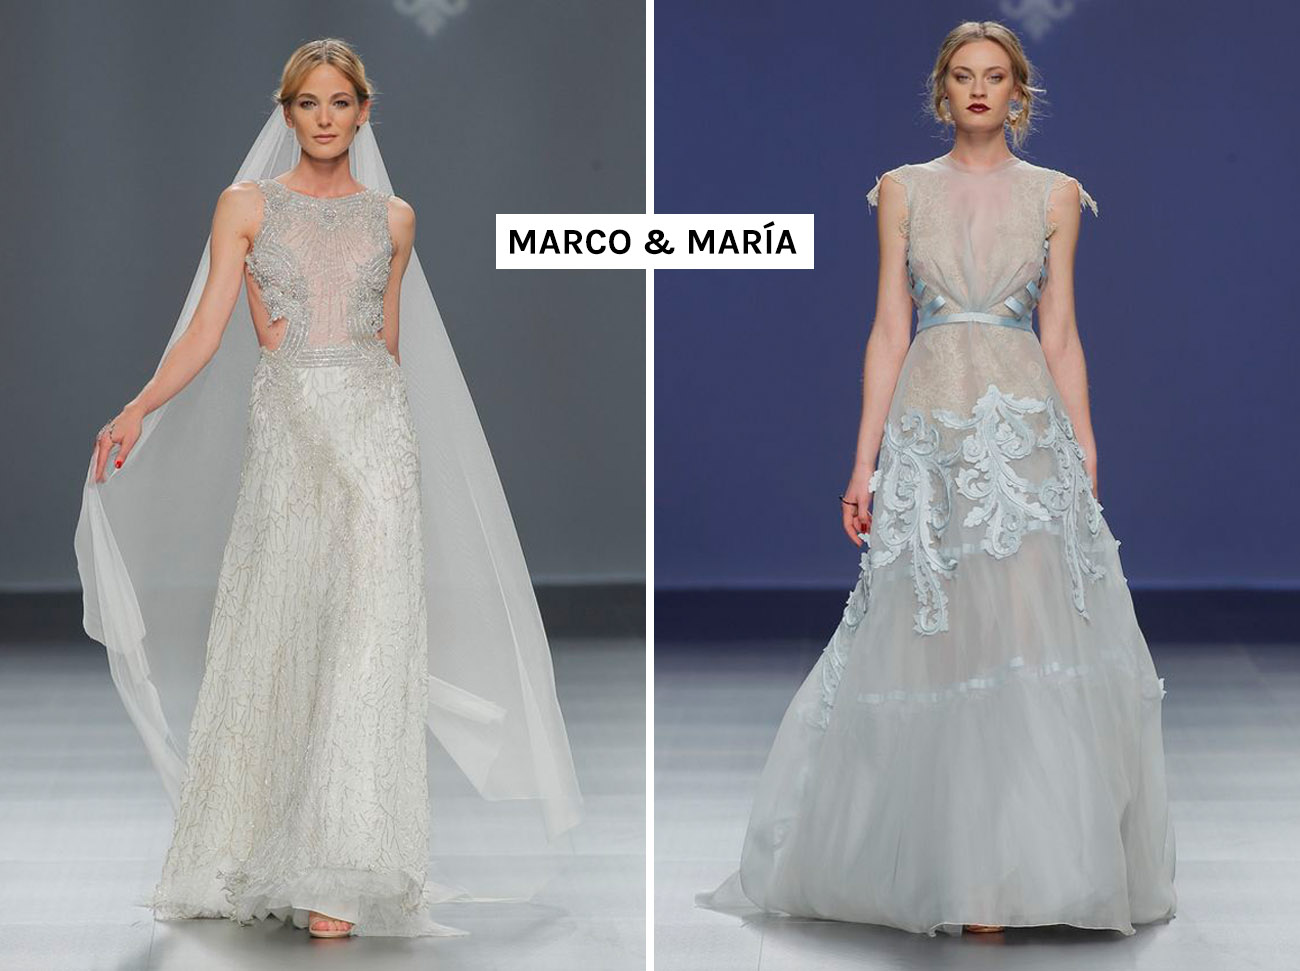 MARCO & MARIA wedding Dresses